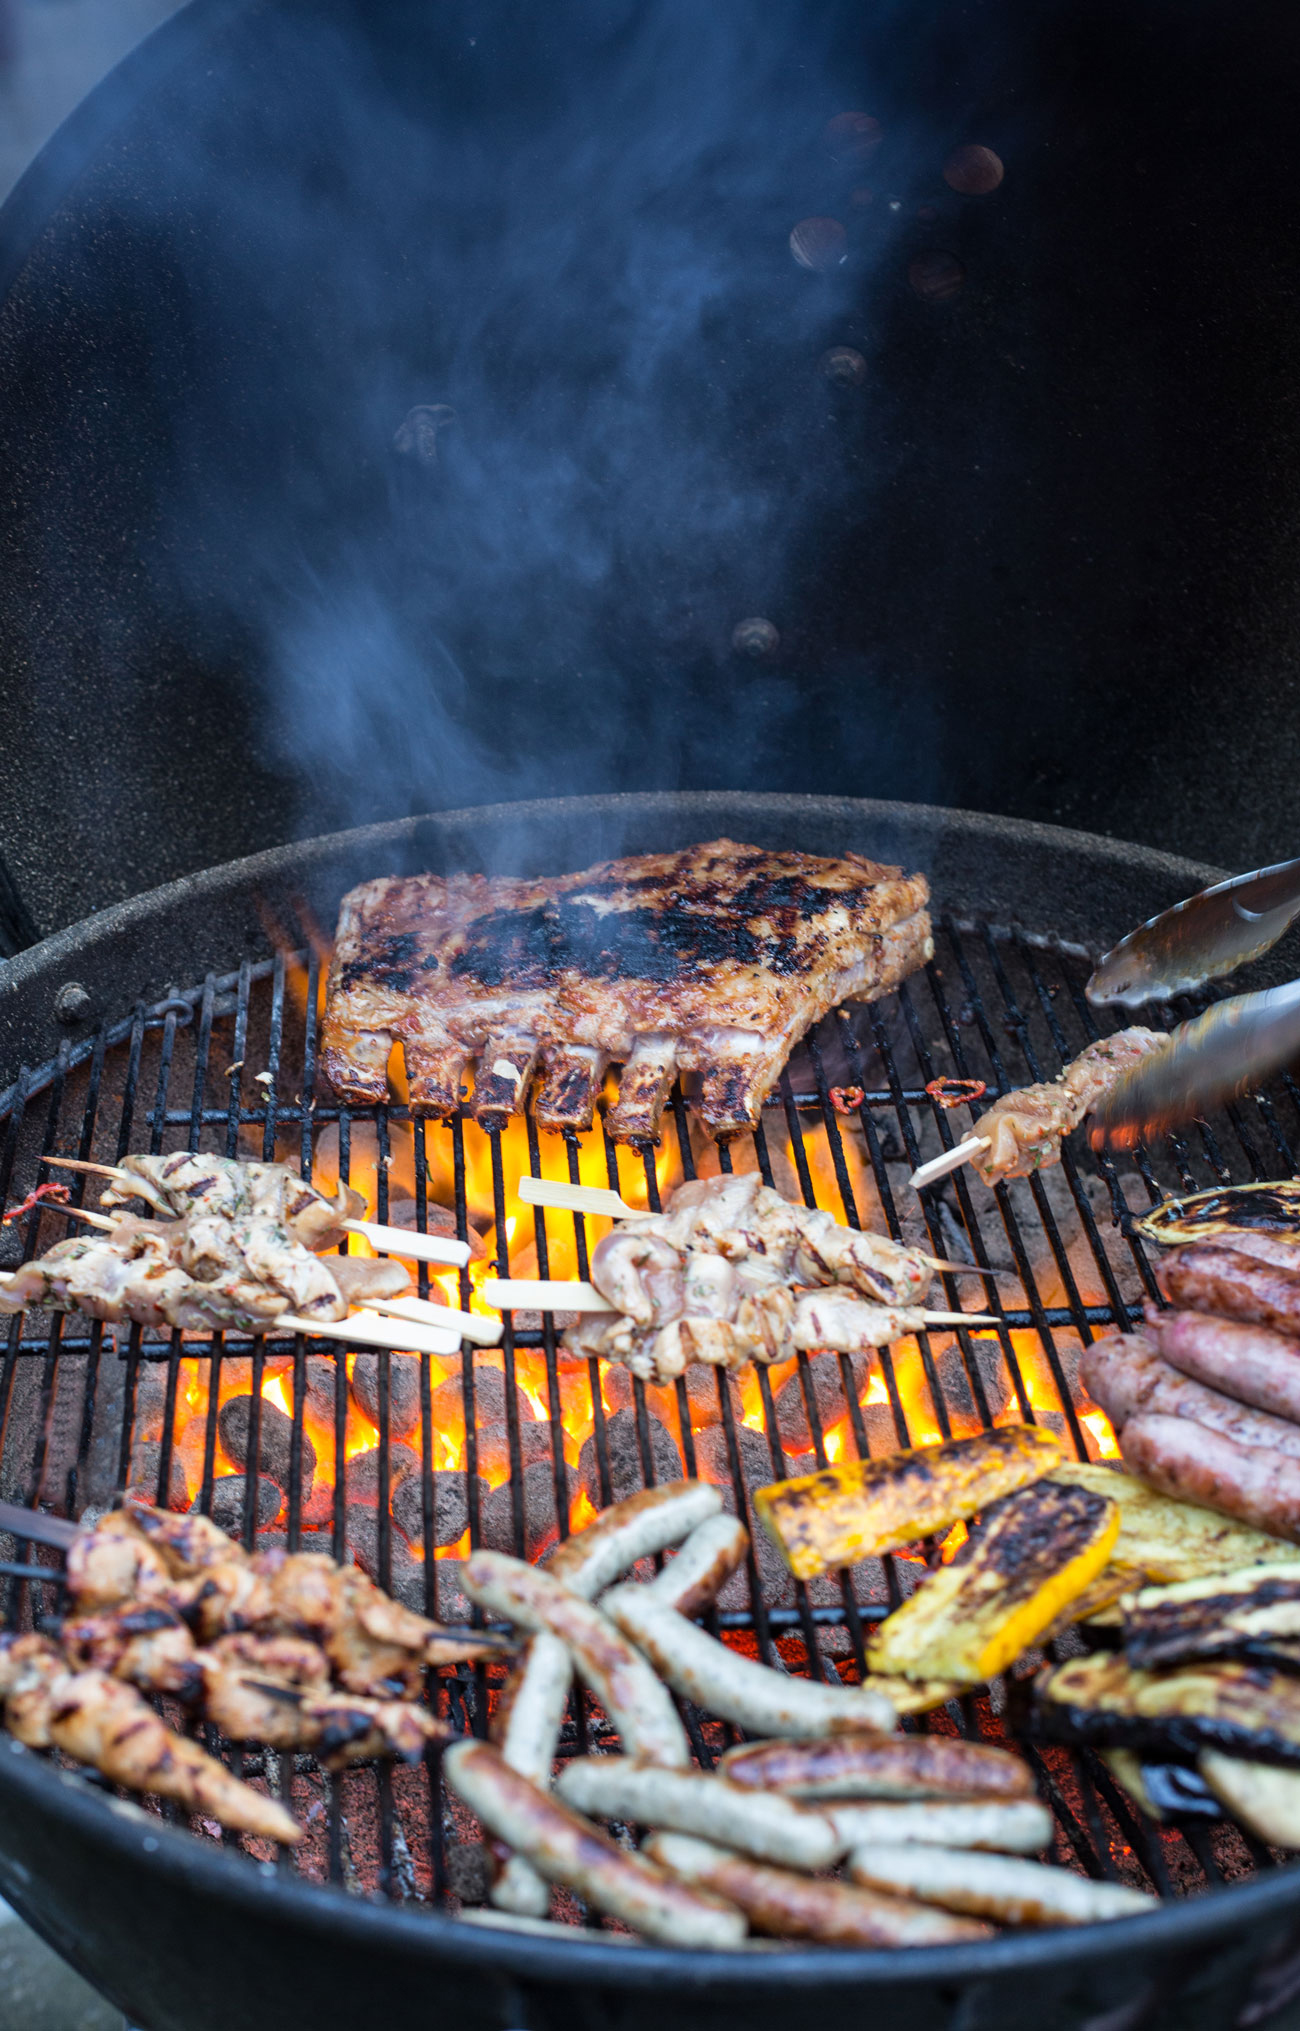 grillen-held-am-herd